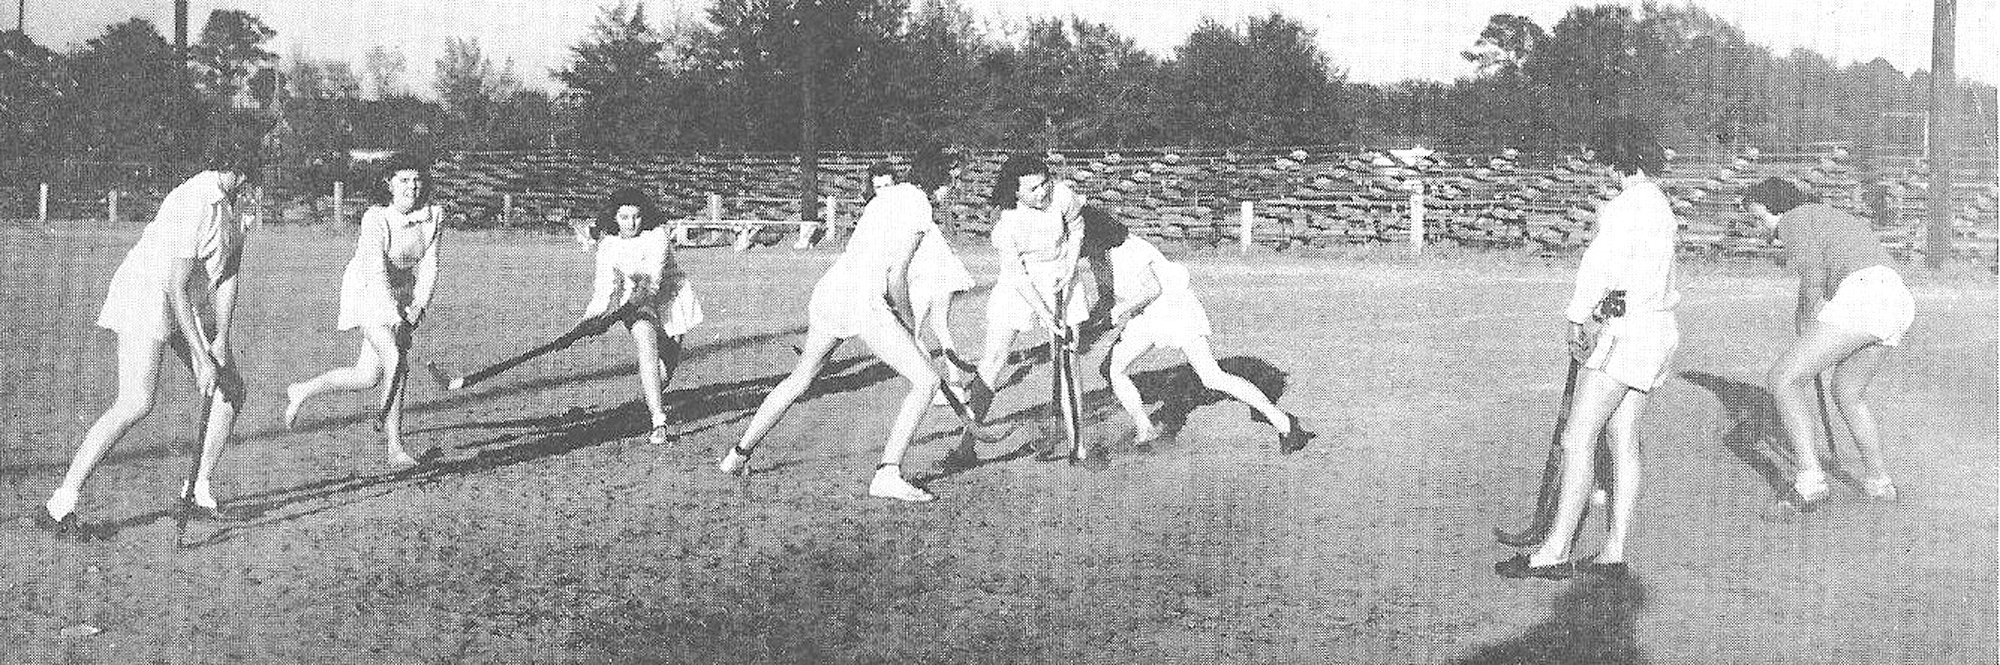 A girls team practices for field hockey finals in 1945. From left are Bernice King, Iris Harris, Sara Horovin, Lillie McCoy, Carolyn Brown, Lavinia Hubbard, Vilma Jackson, Betty Doverspike and Bertha Ross.